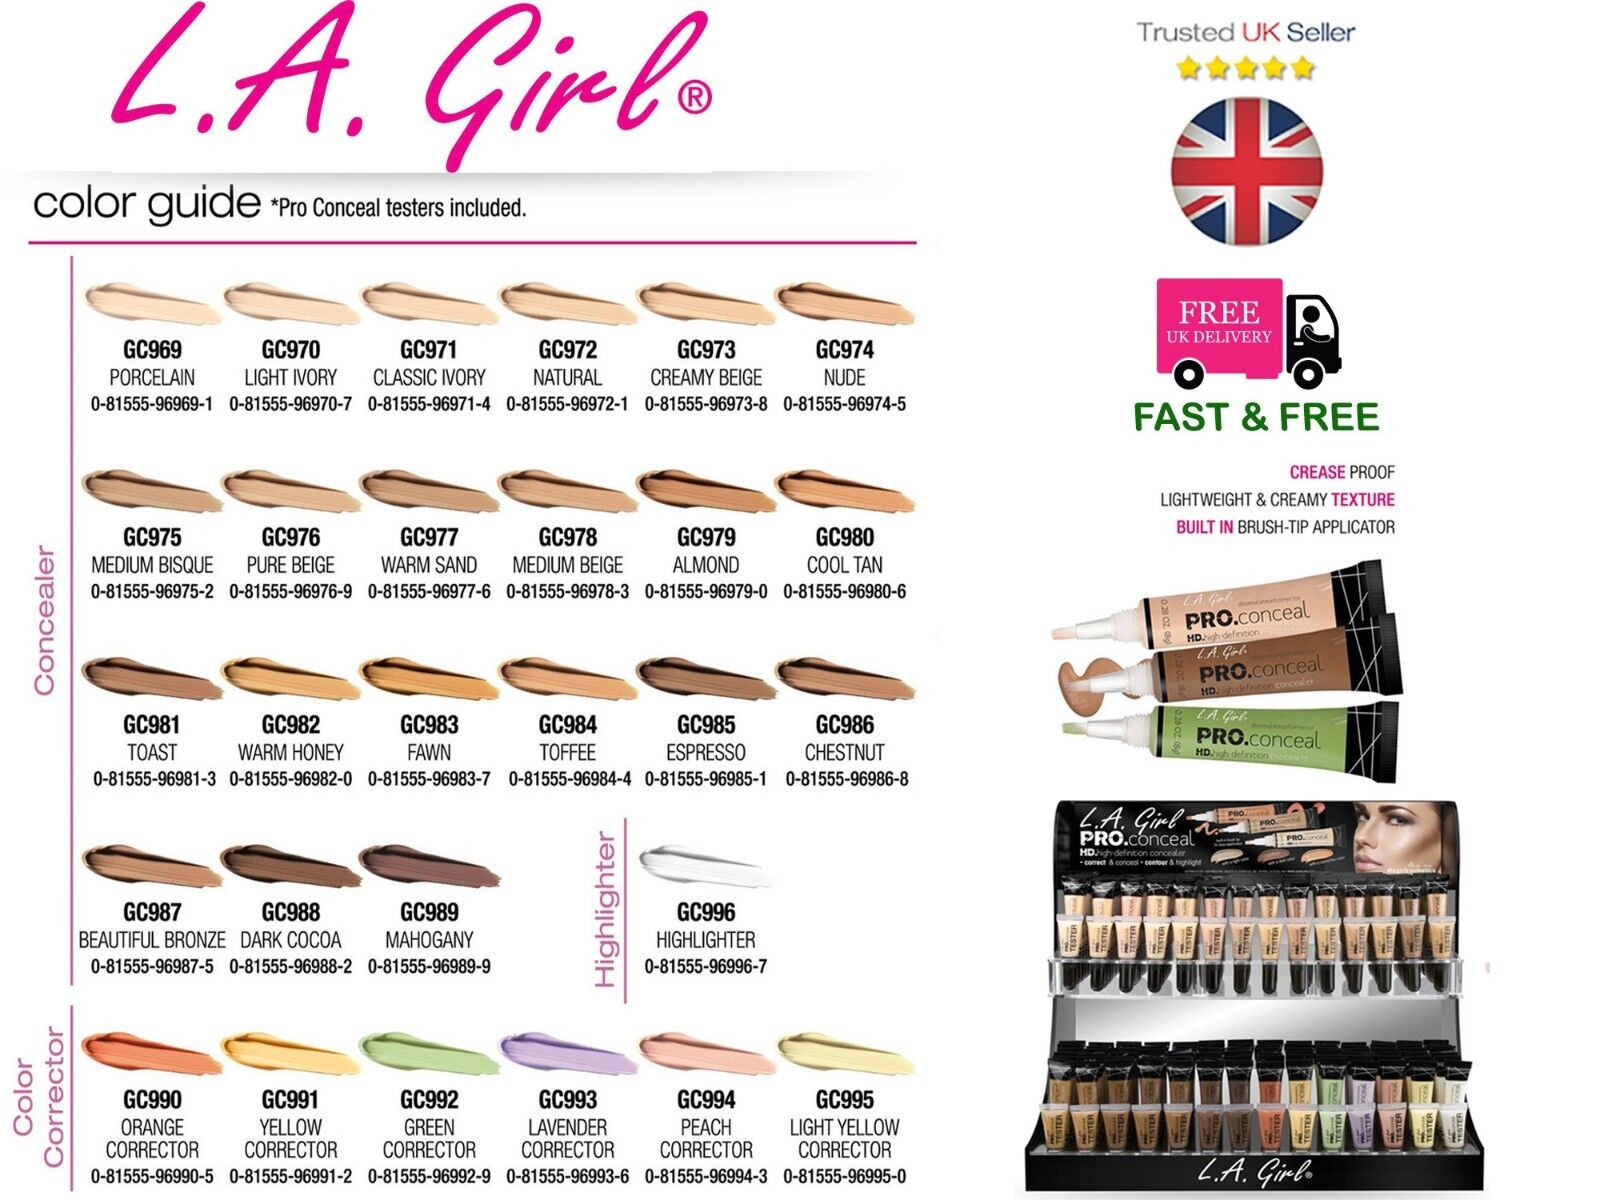 LA GIRL PRO CONCEALER HD -100% AUTHENTIC- UK SELLER- 28 SHADES-***